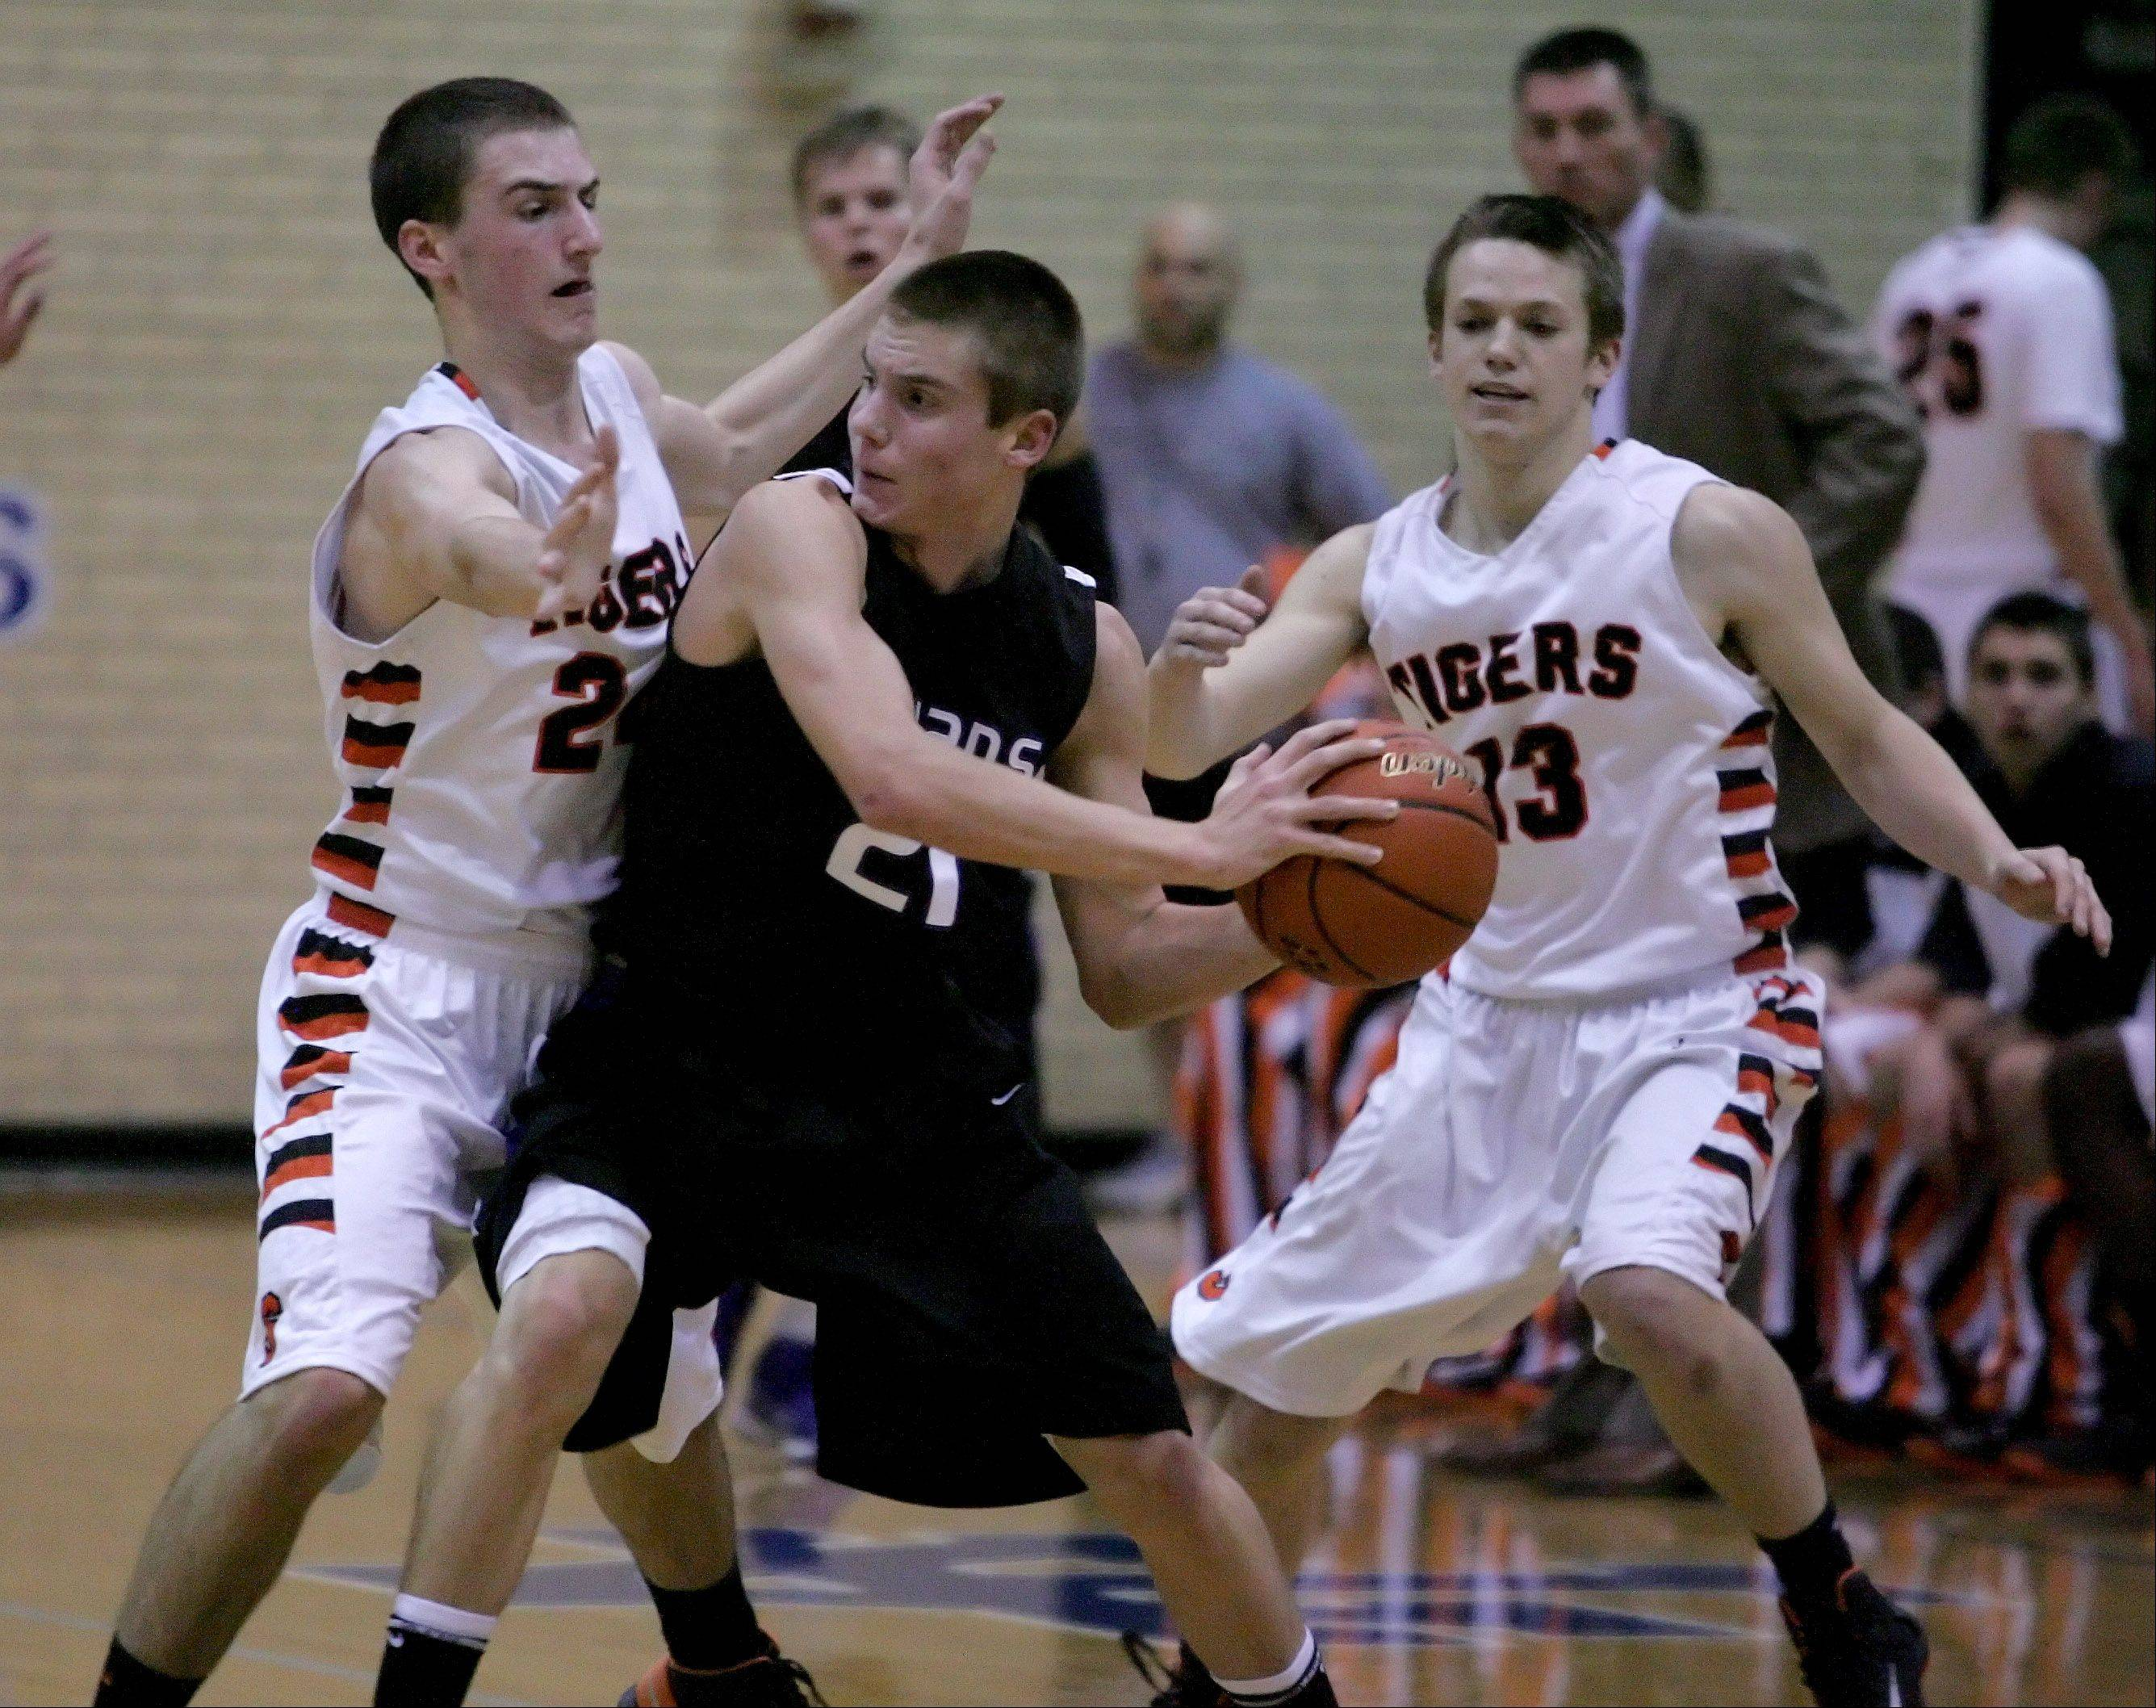 David Henson of Downers Grove North, looks for room to pass as Matt Kienzle, left and Adam Rogers, right, of Wheaton Warrenville South, defend in boys basketball action in Addison on Tuesday.